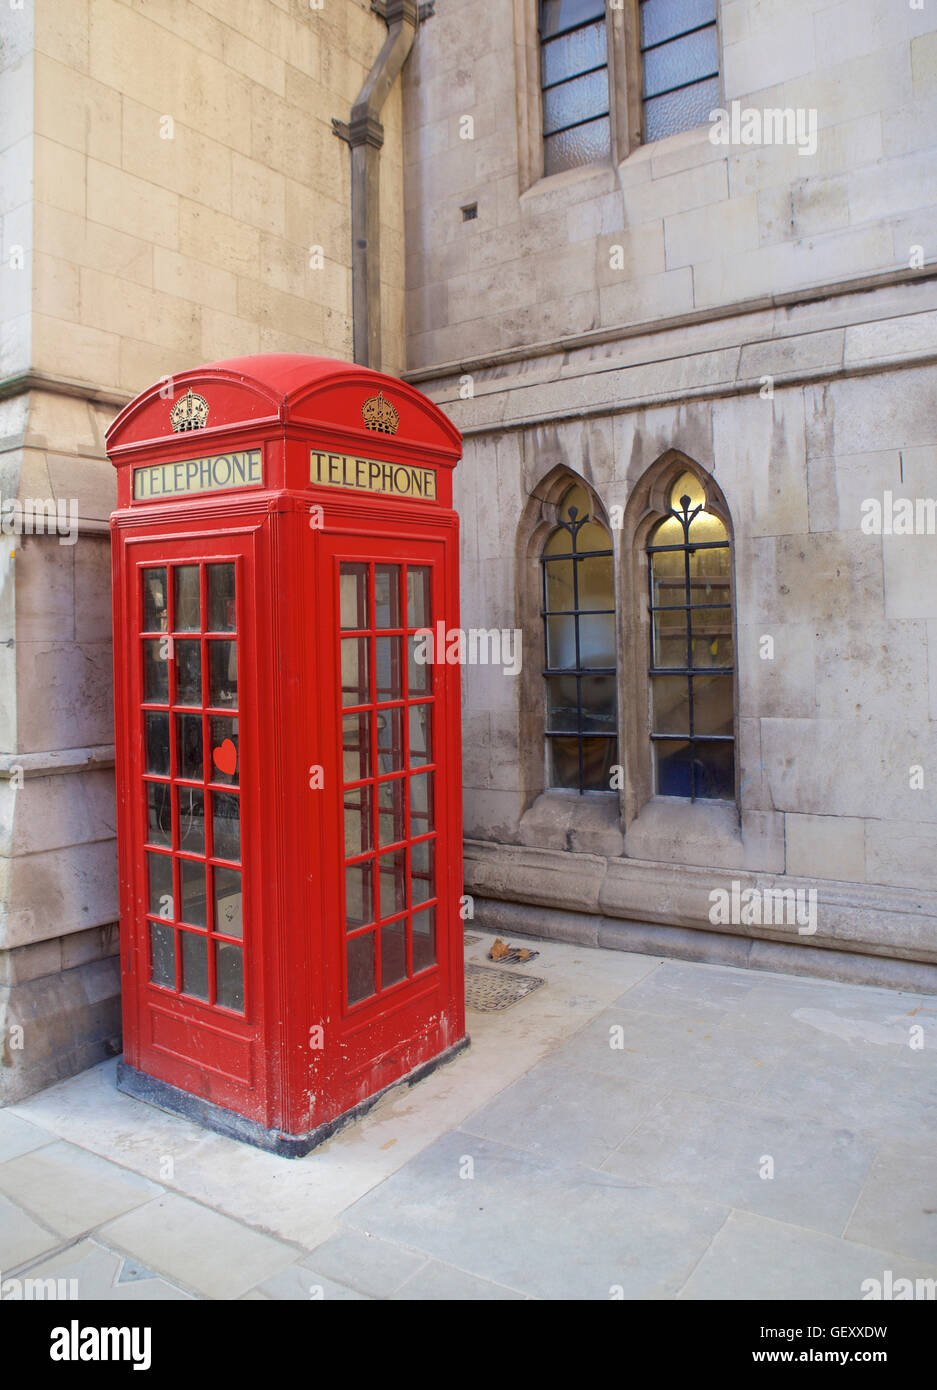 Red telephone booth designed by Sir Giles Gilbert Scott in Fleet Street. - Stock Image